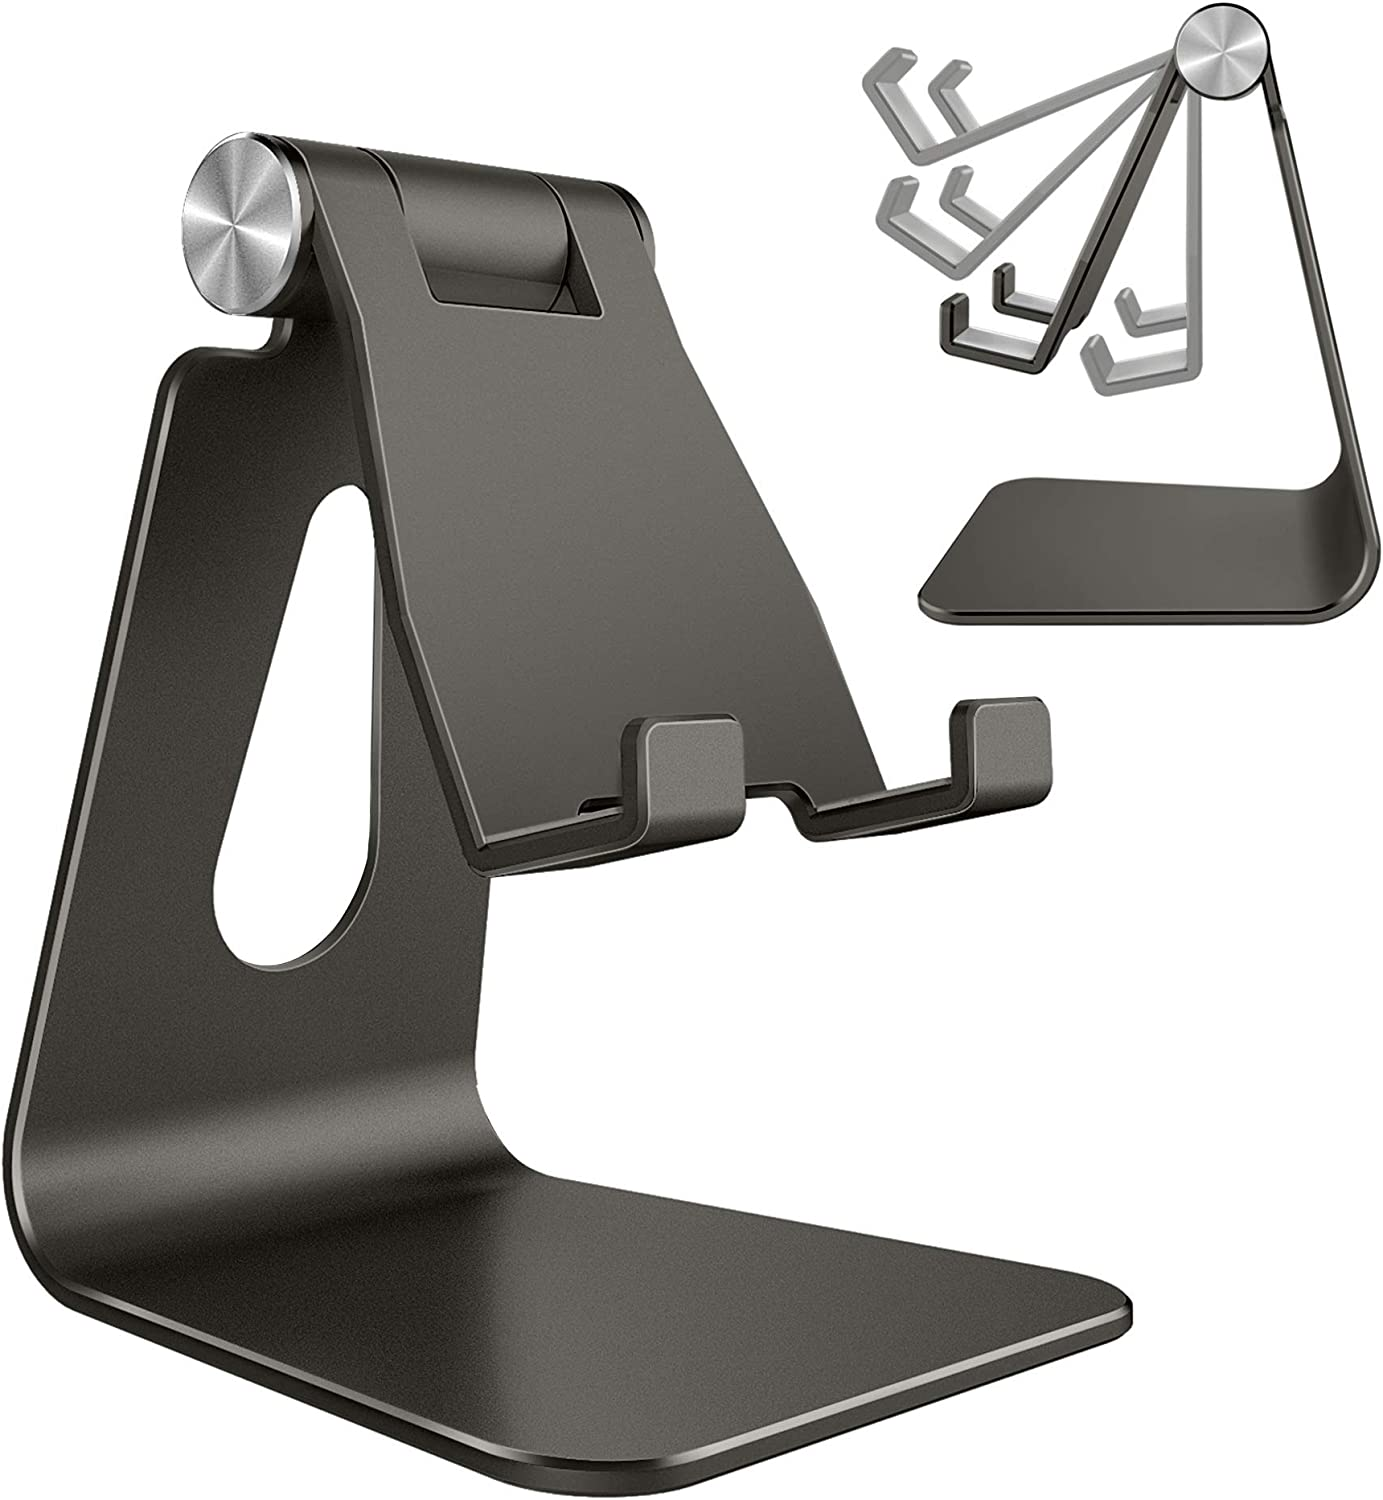 Adjustable Cell Phone Stand, CreaDream Phone Stand, Cradle, Dock, Holder, Aluminum Desktop Stand Compatible with iPhone Xs Max Xr 8 7 6 6s Plus 5s Charging, Accessories Desk,All Smart Phone-Graphite